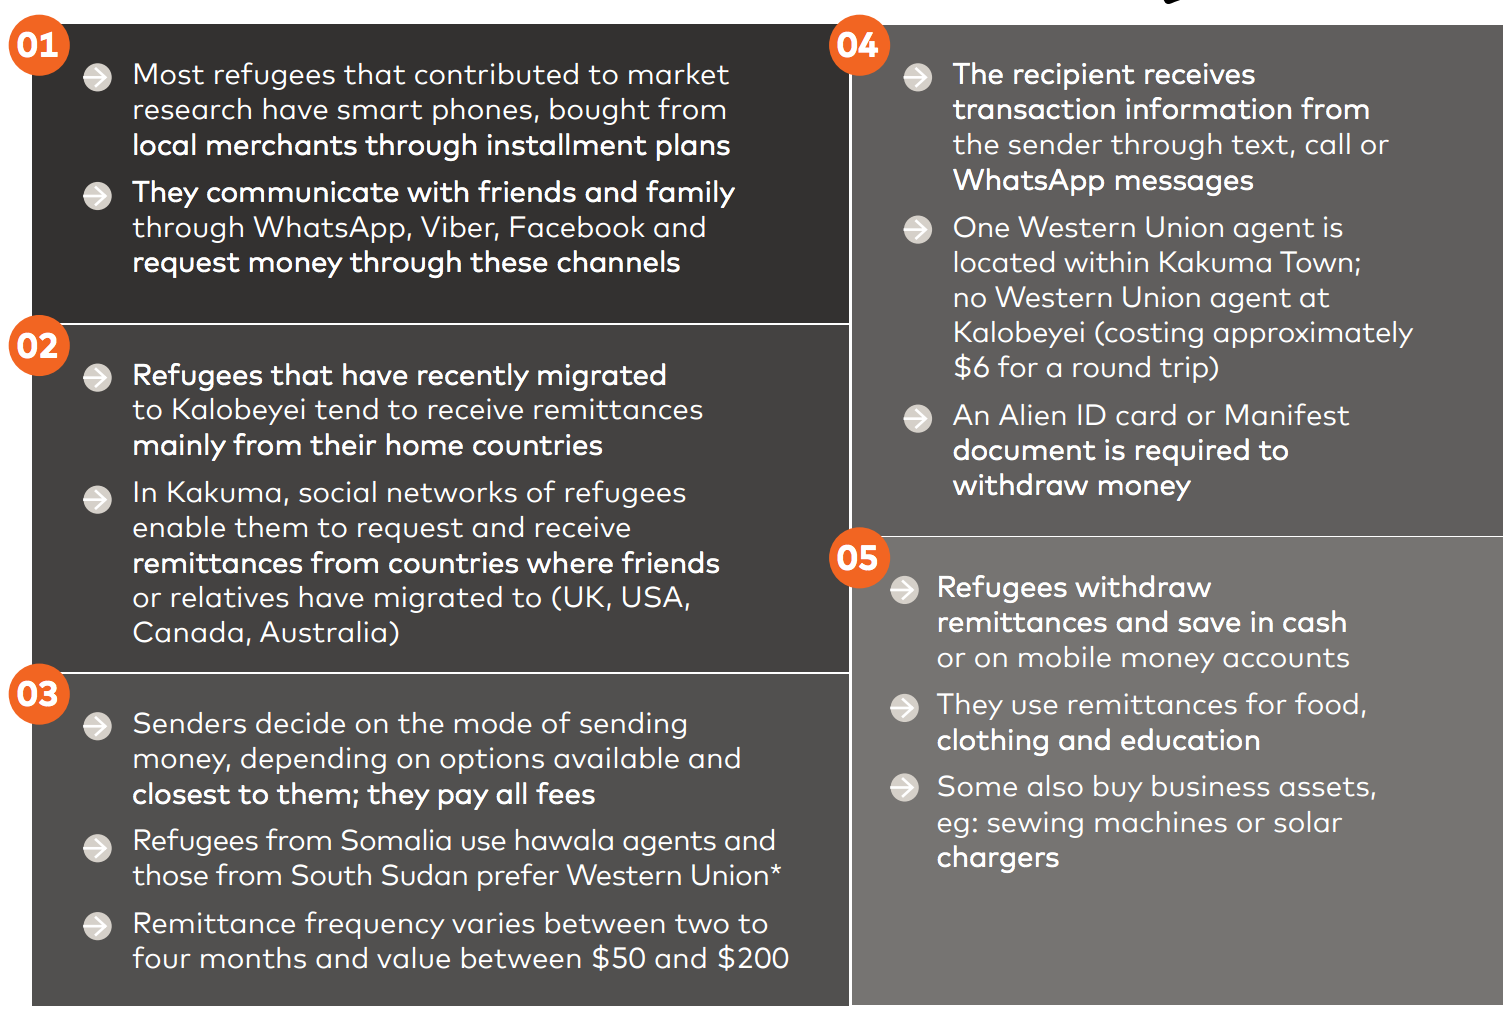 How Refugees Can Financially Assimilate With the Host Country – A Study by Mastercard & Western Union